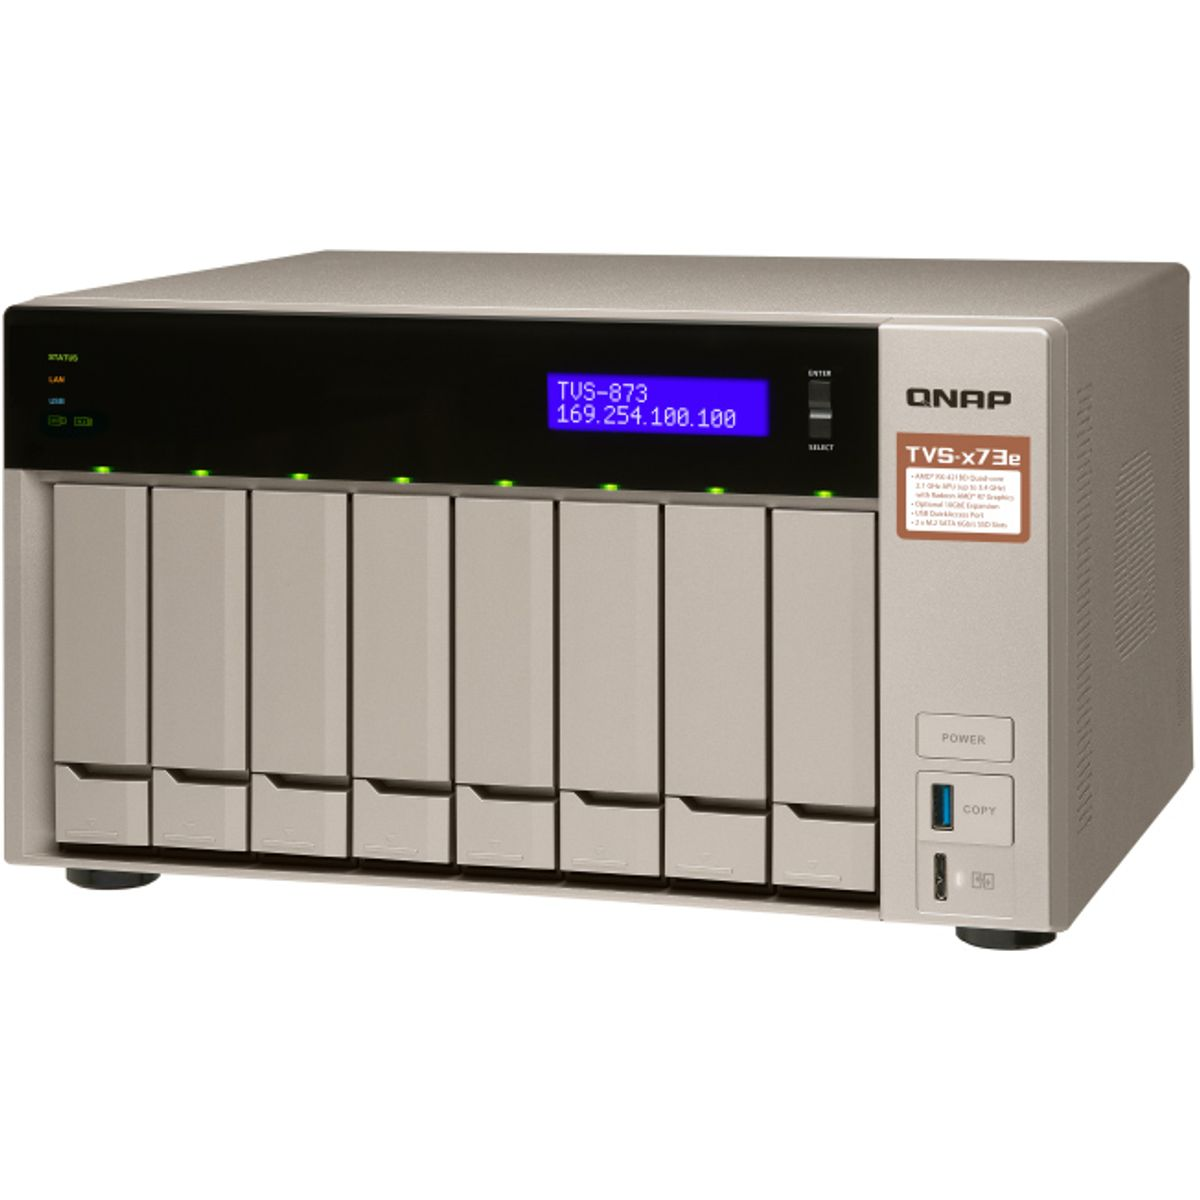 Qnap TVS-873e-4G 8-Bay 18TB Bundle mit 6x 3TB IronWolf ST3000VN007